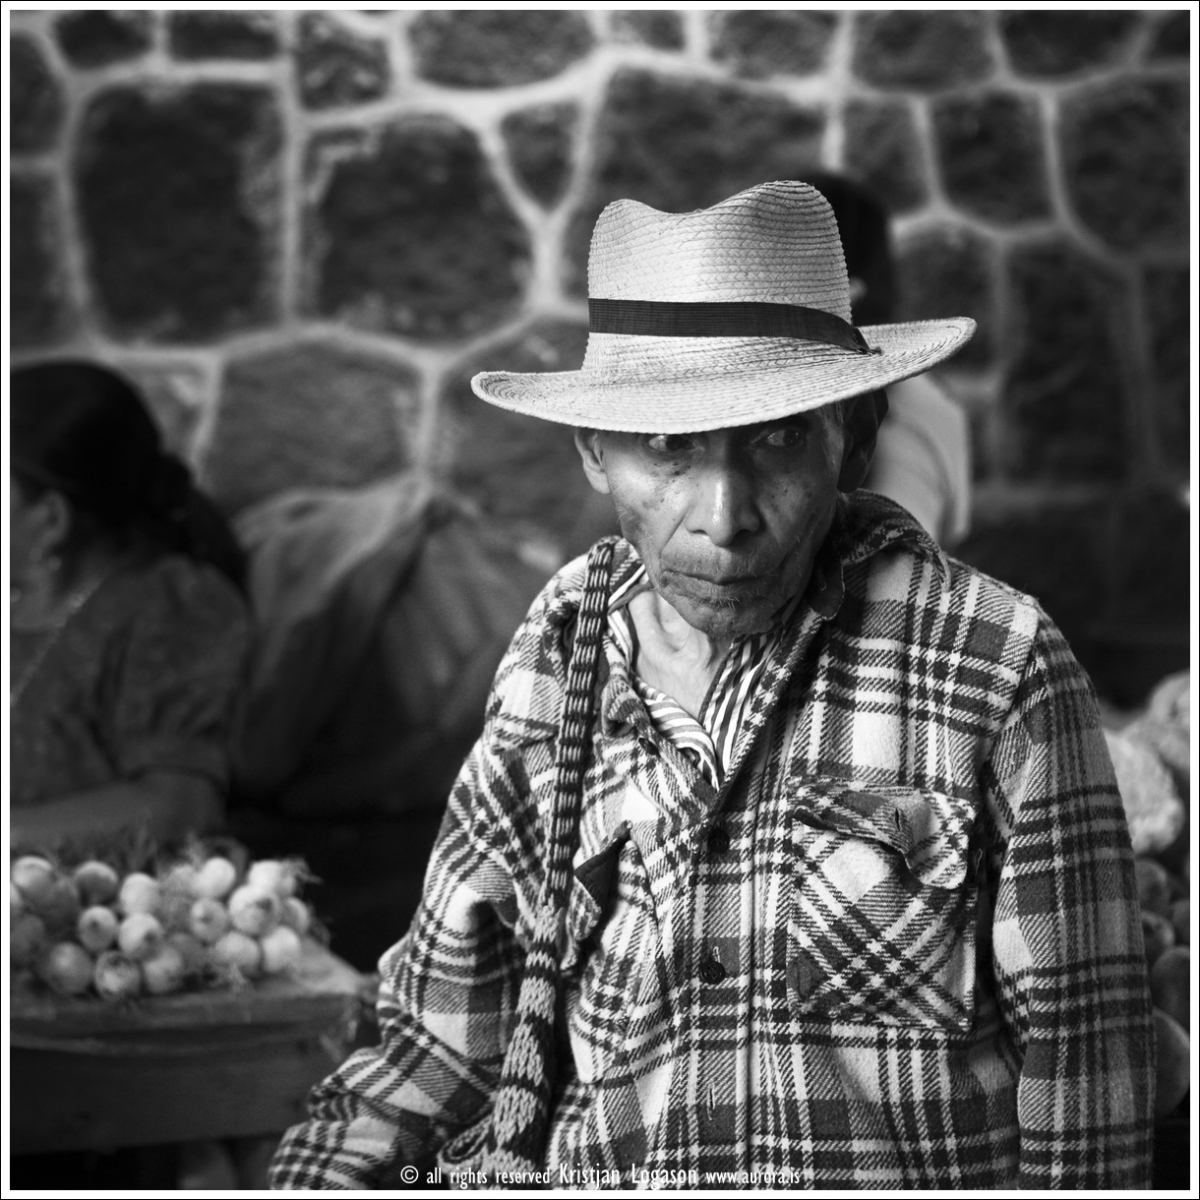 Man with hat shopping at the market in San Pedro